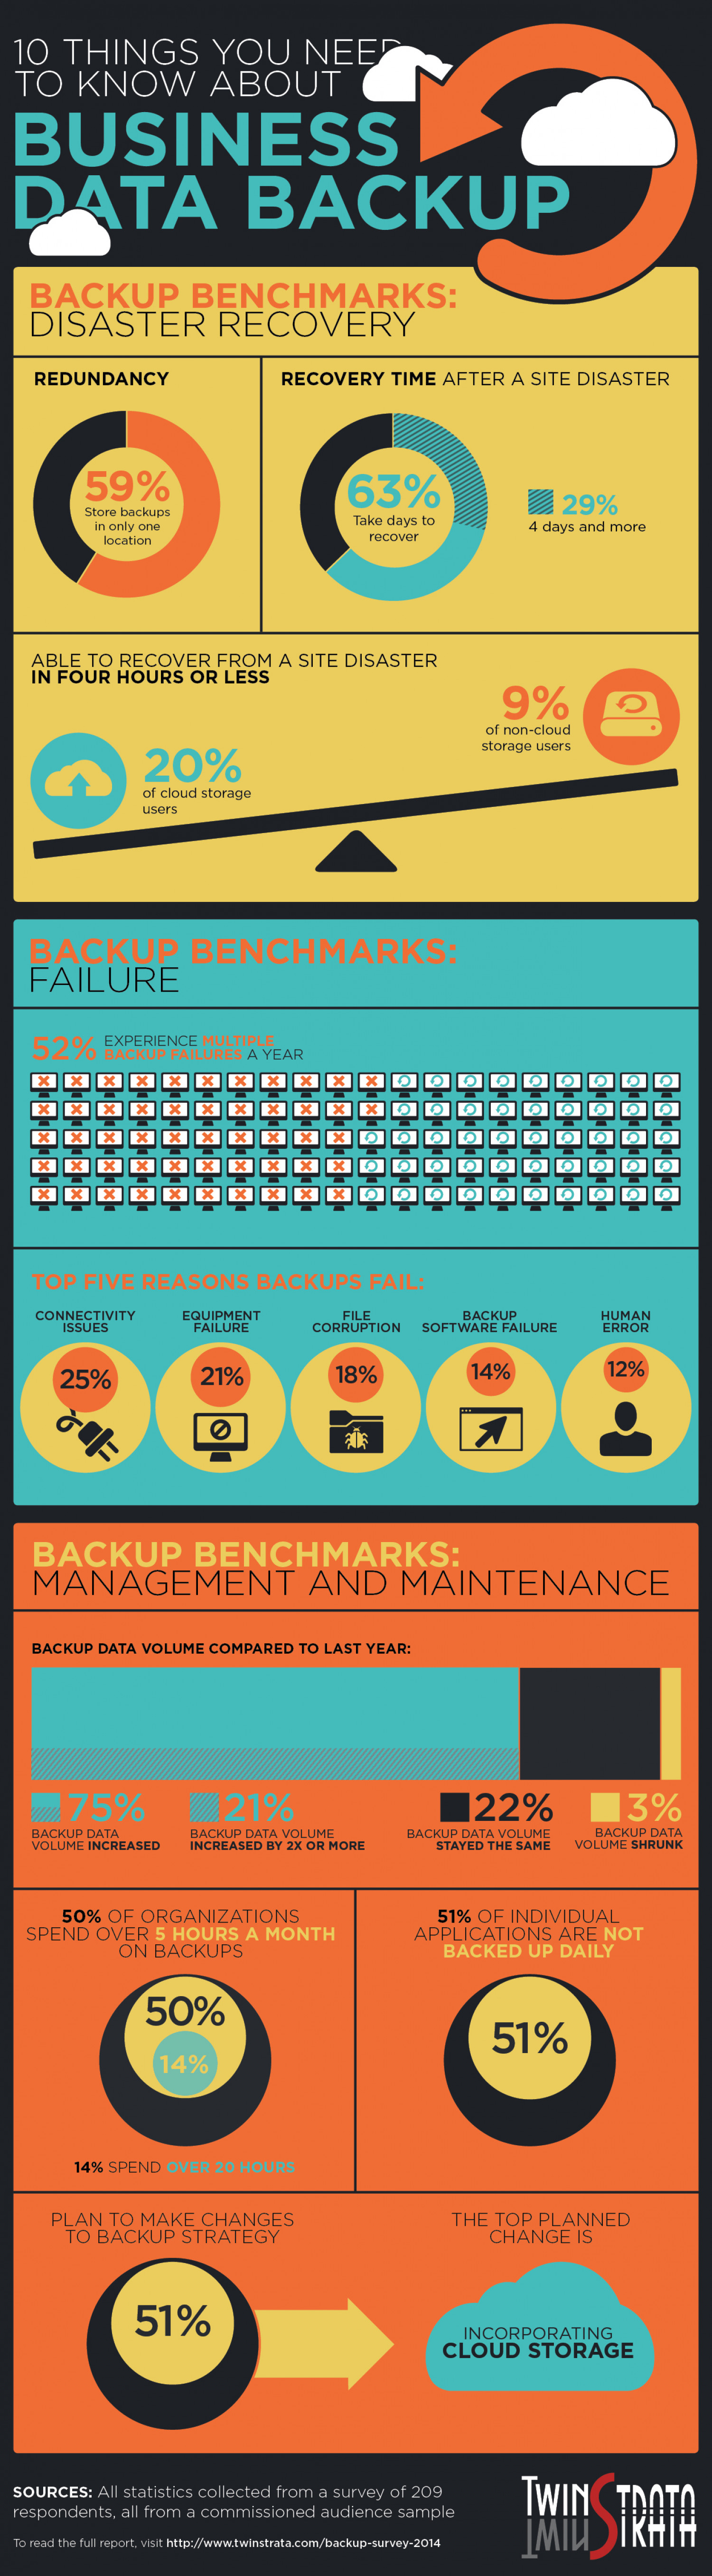 10 things you need to know about business data backup Infographic